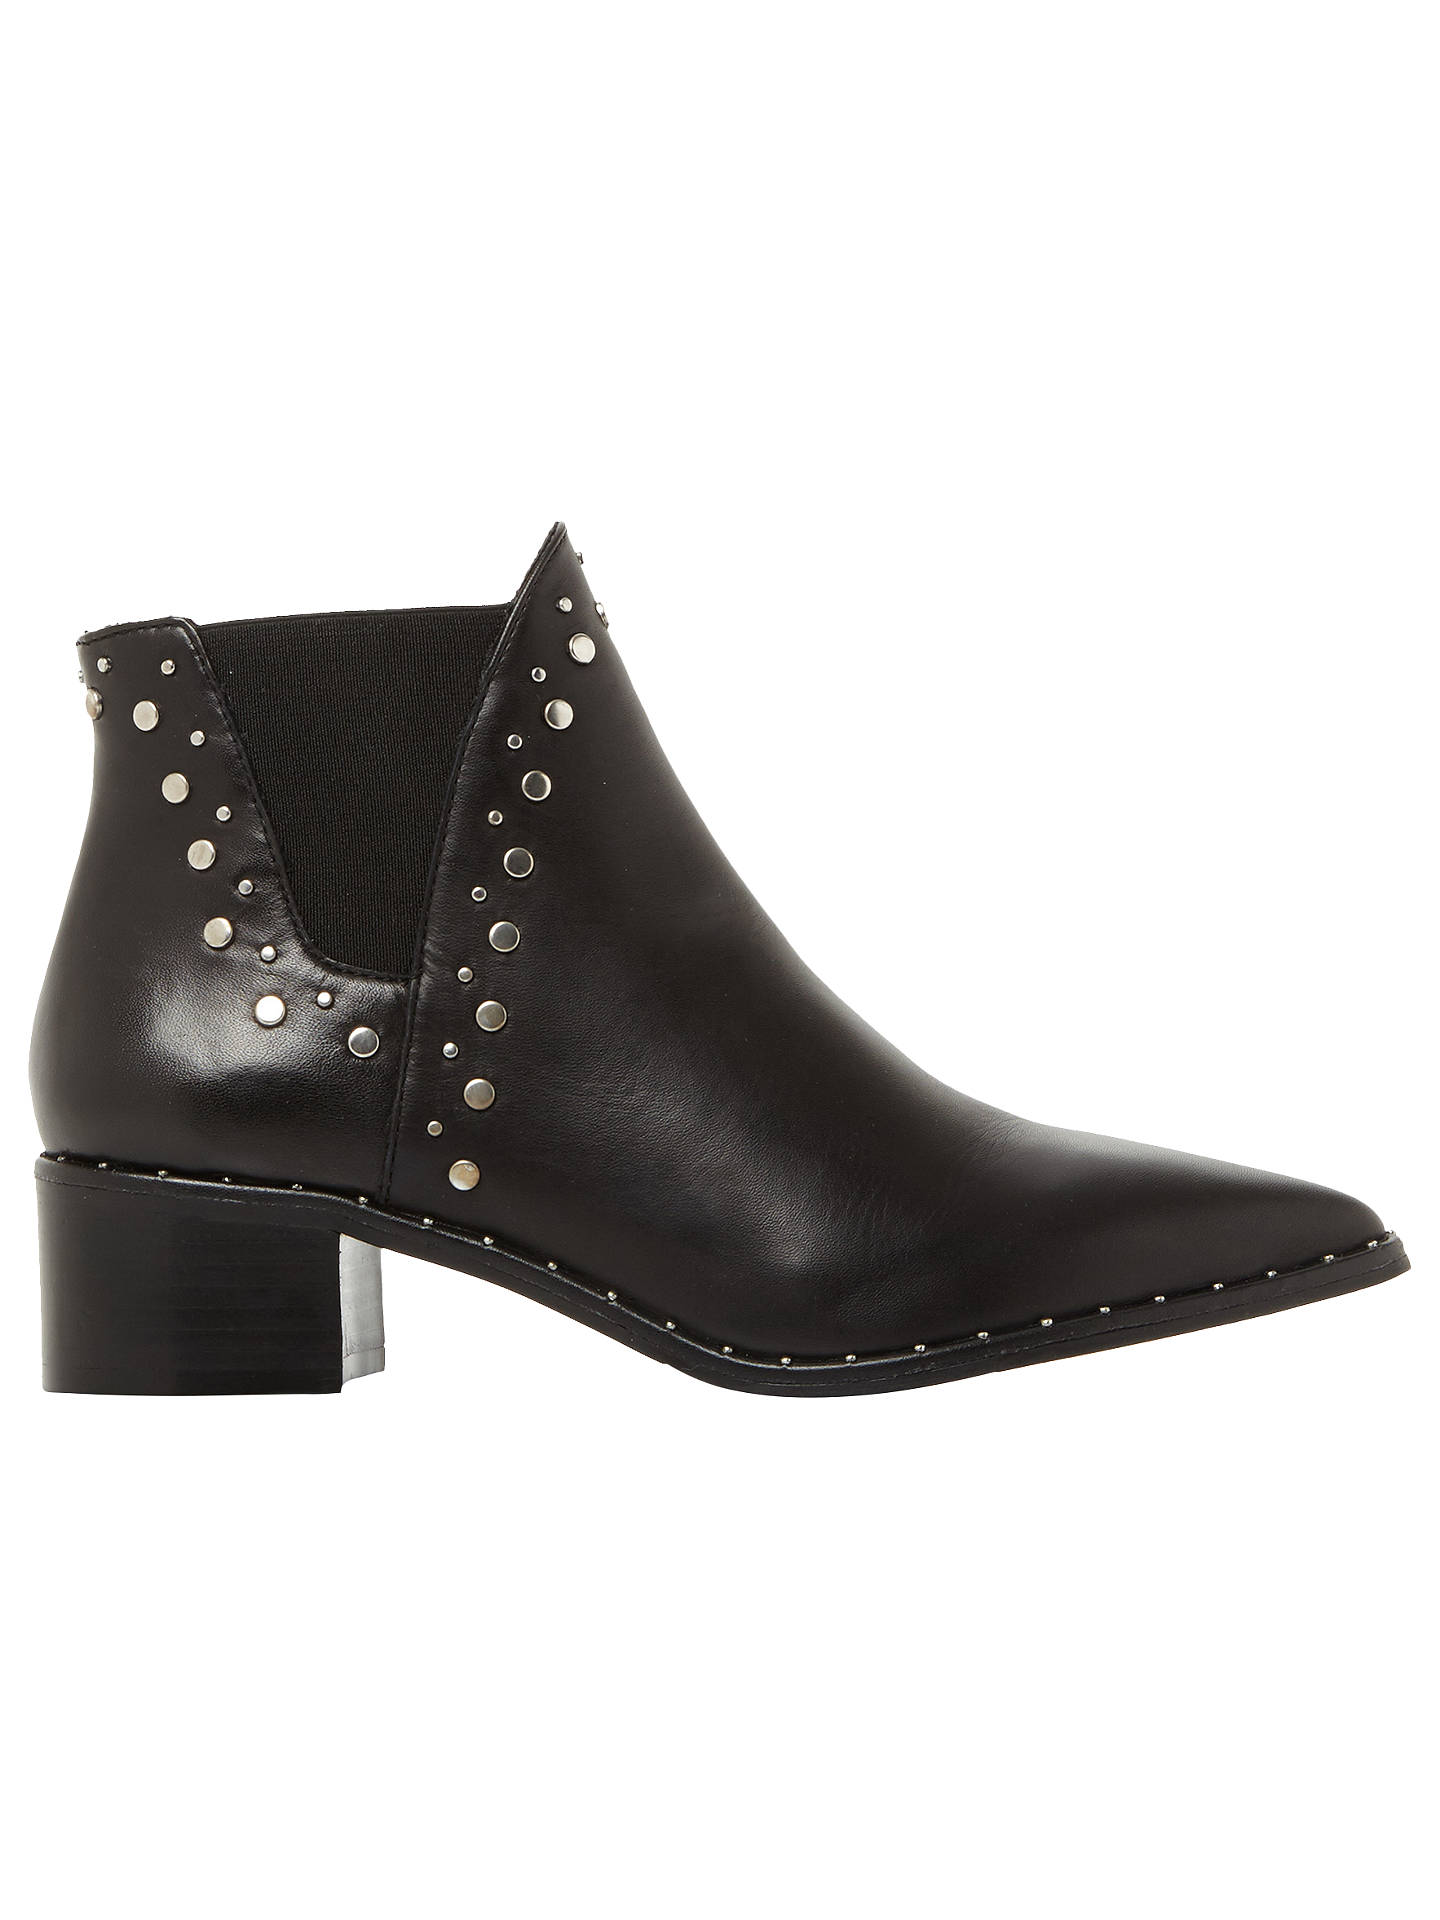 Buy Steve Madden Doruss Studded Ankle Chelsea Boots, Black Leather, 3 Online at johnlewis.com